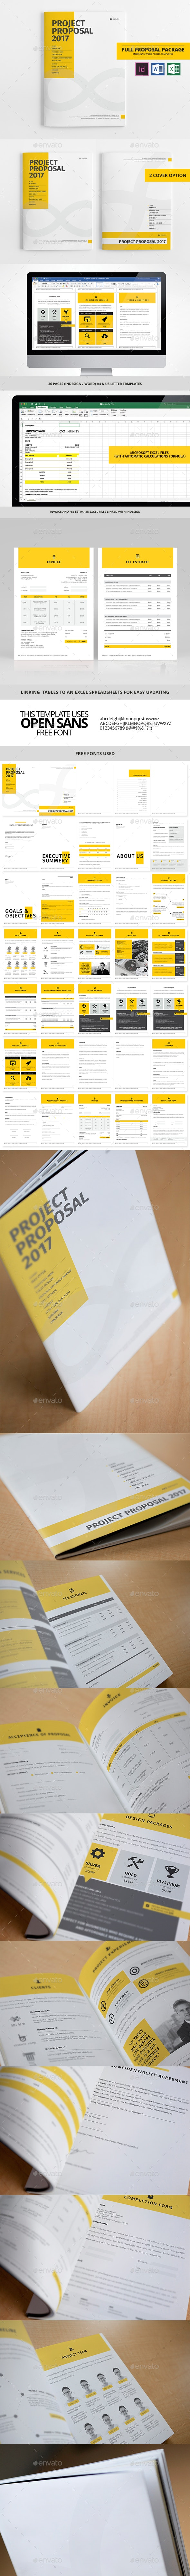 36 Page Full Proposal Package A4 / US Letter - Proposals & Invoices Stationery